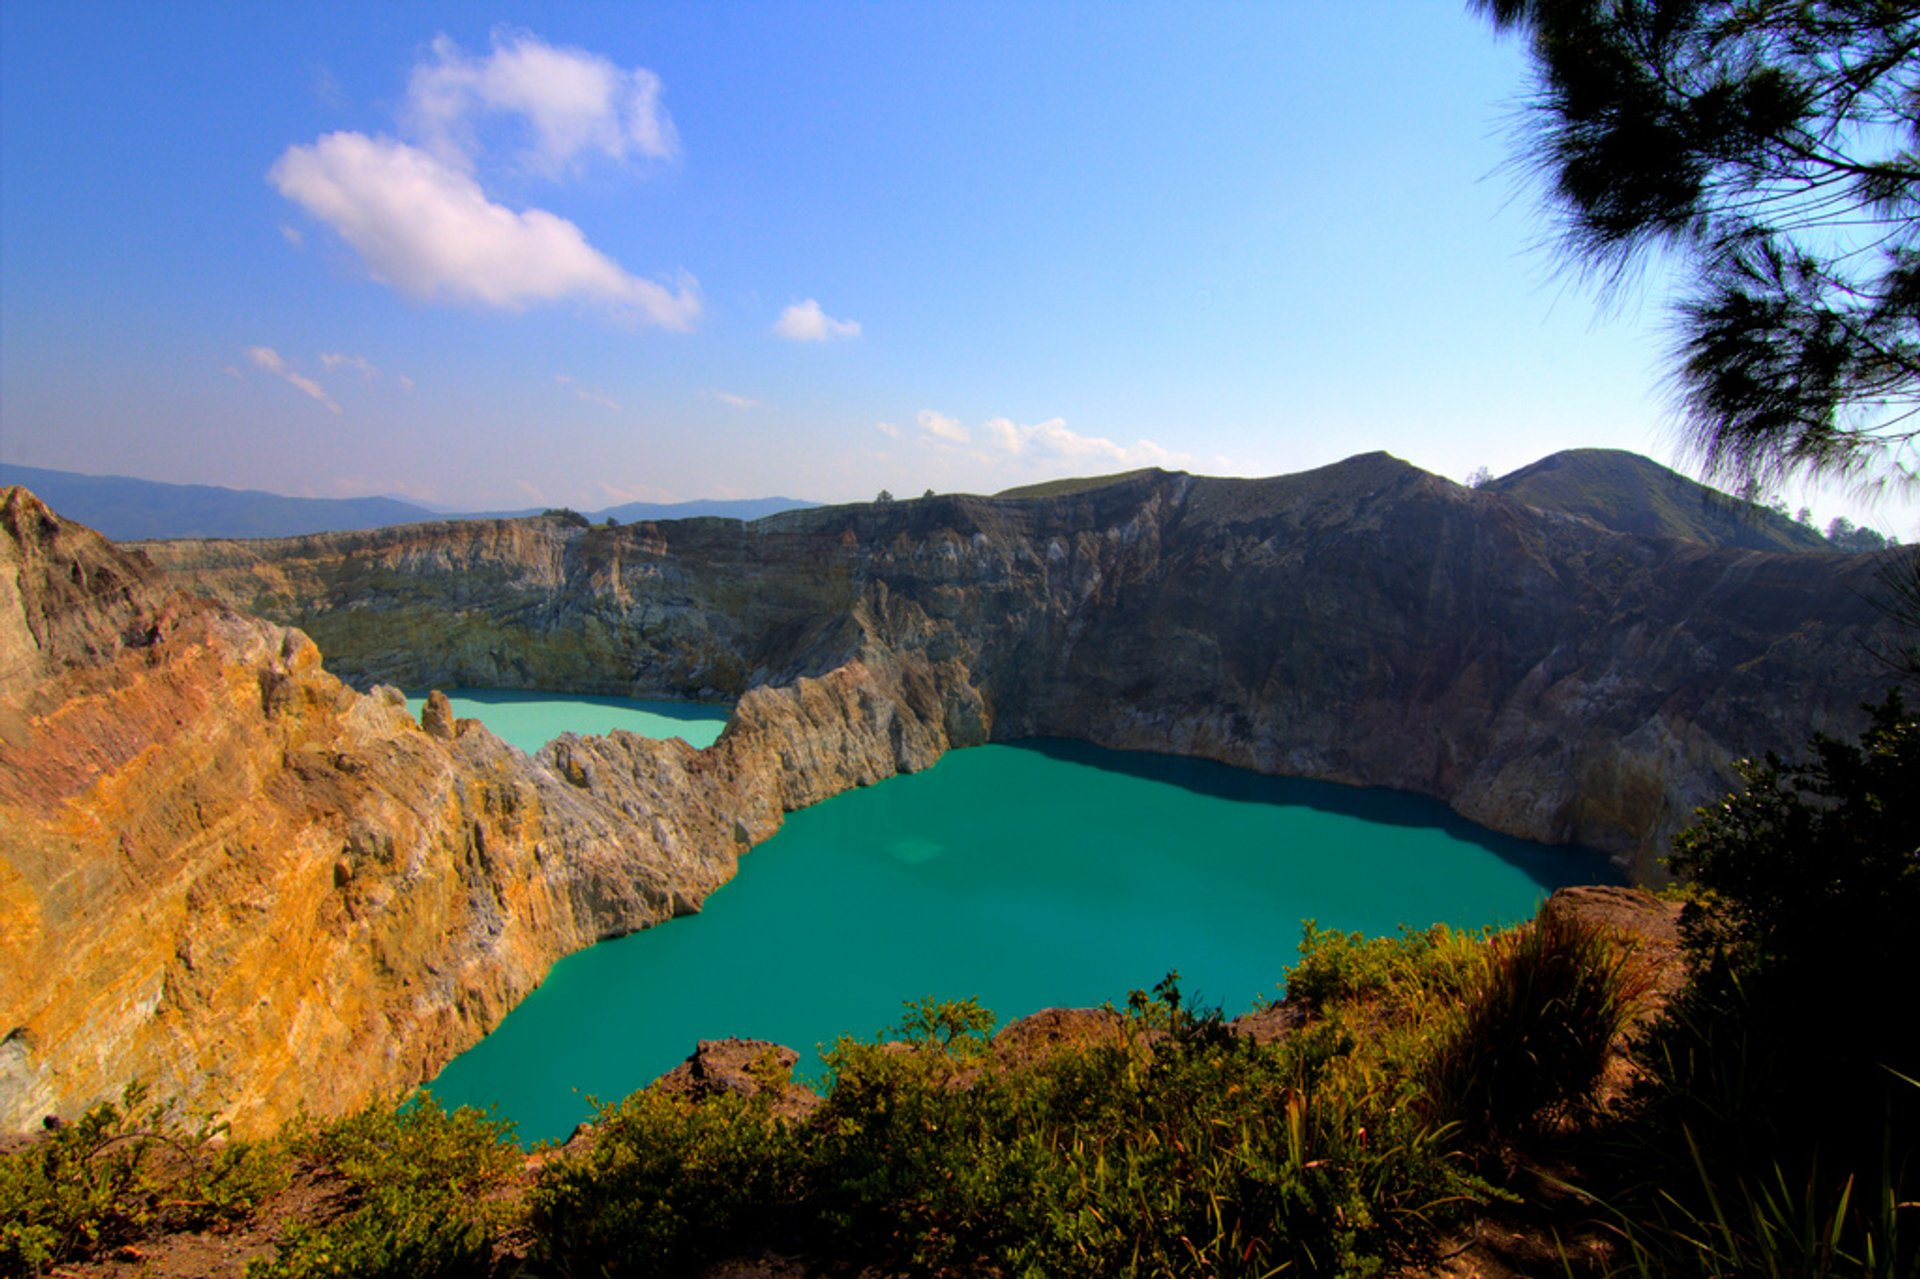 Kelimutu Crater Lakes in Indonesia 2020 - Best Time